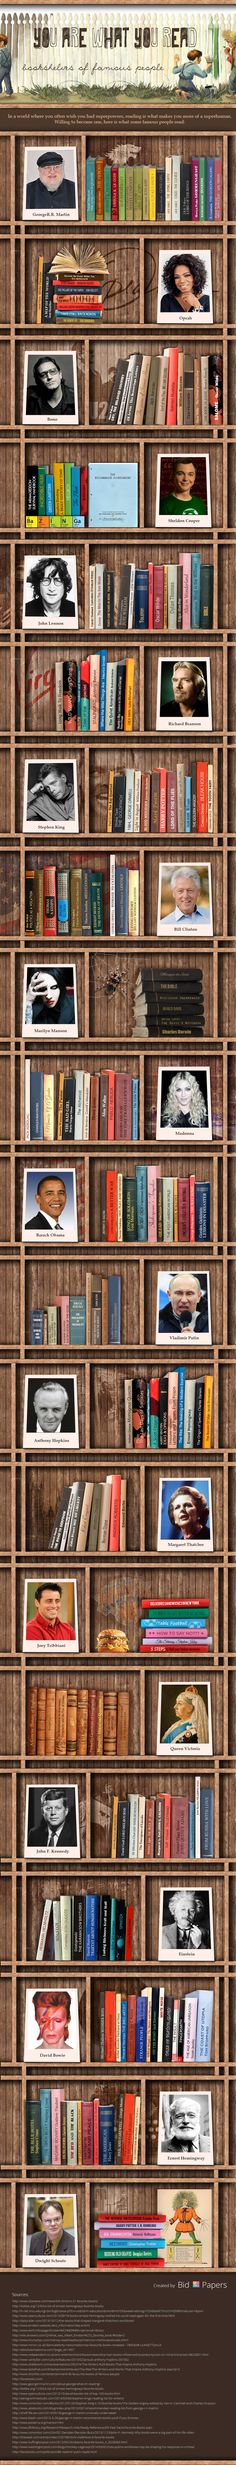 Reading lists of famous people